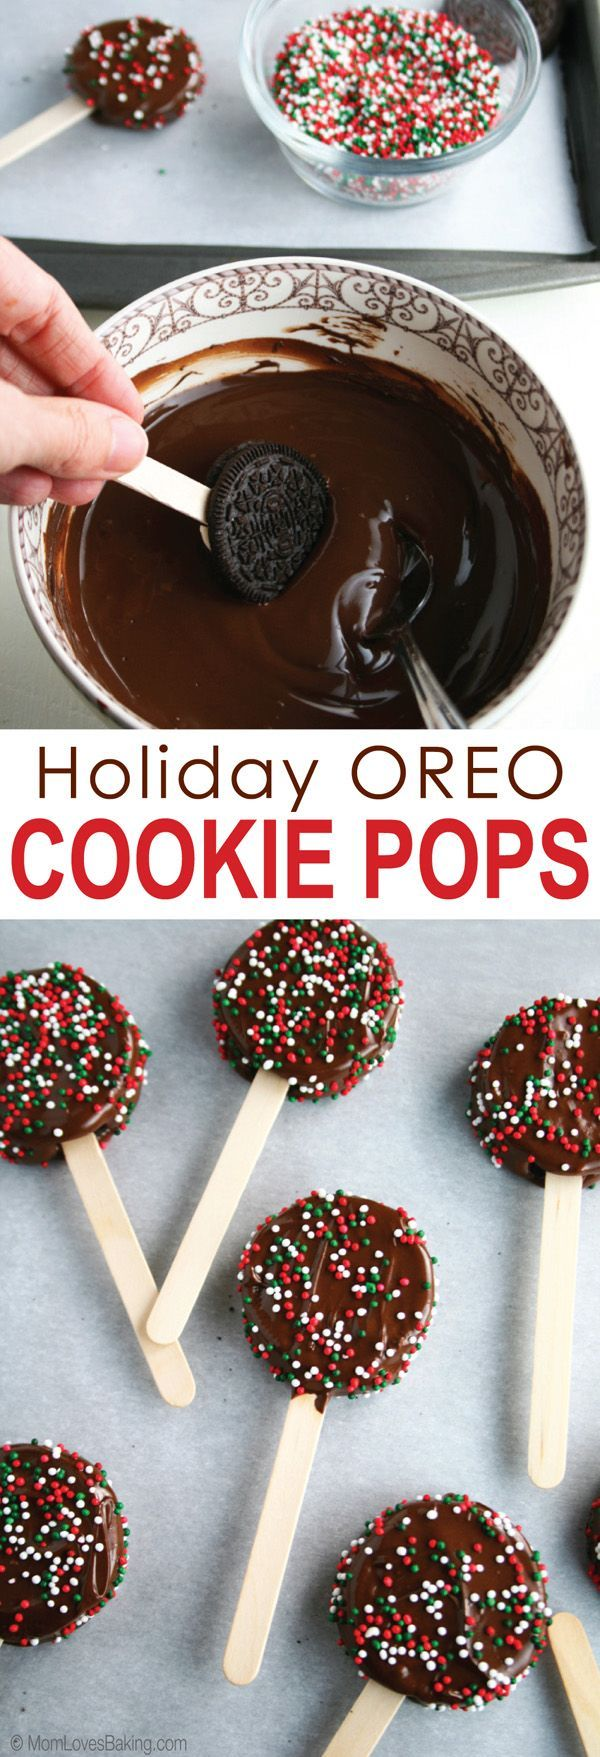 Holiday OREO Cookie Pops are a chocolate lovers dream and also super simple to make. Just 3 ingredients! Plus, party planning tips for a Hot Chocolate Bar. [ad]